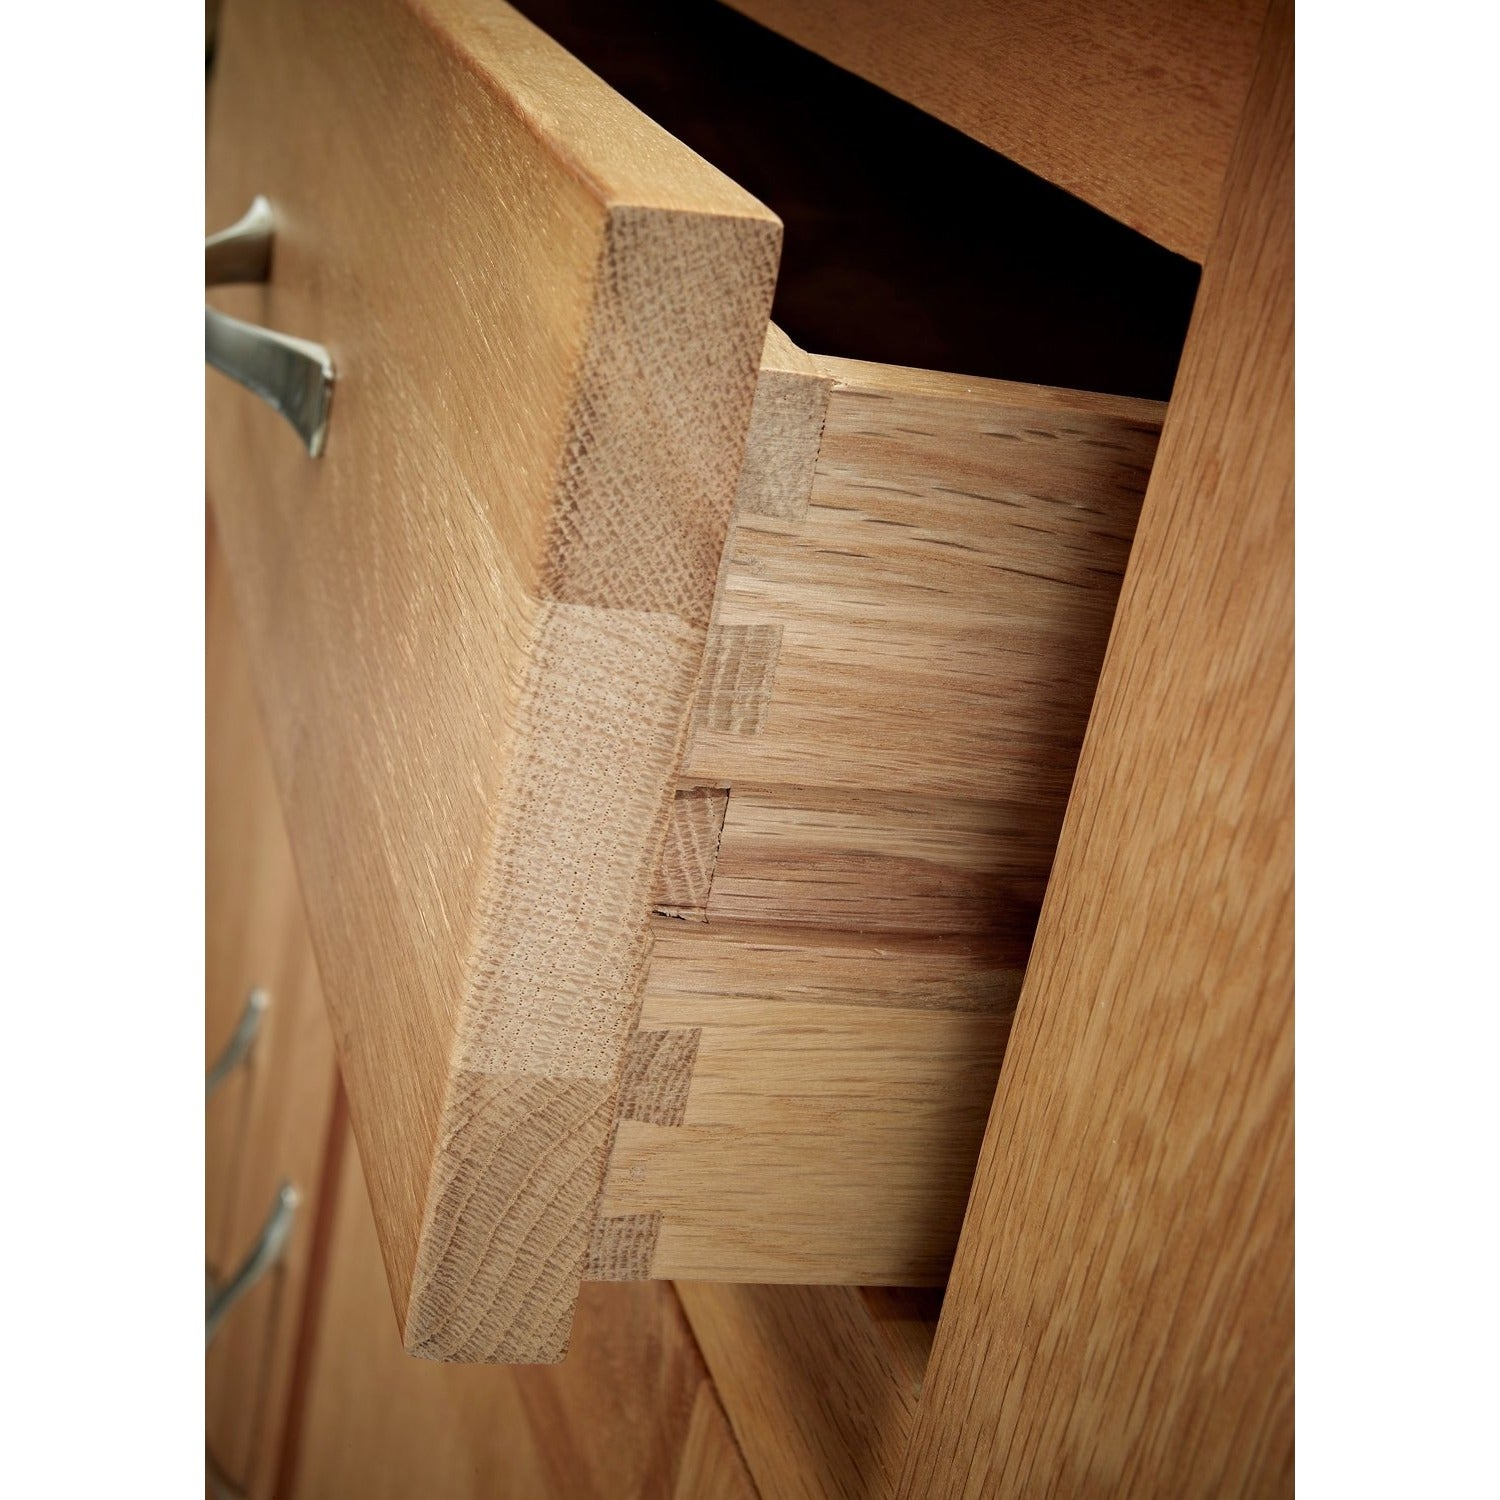 Sherwood Oak Filing Cabinet 2 Drawer - Perfectly Home Interiors